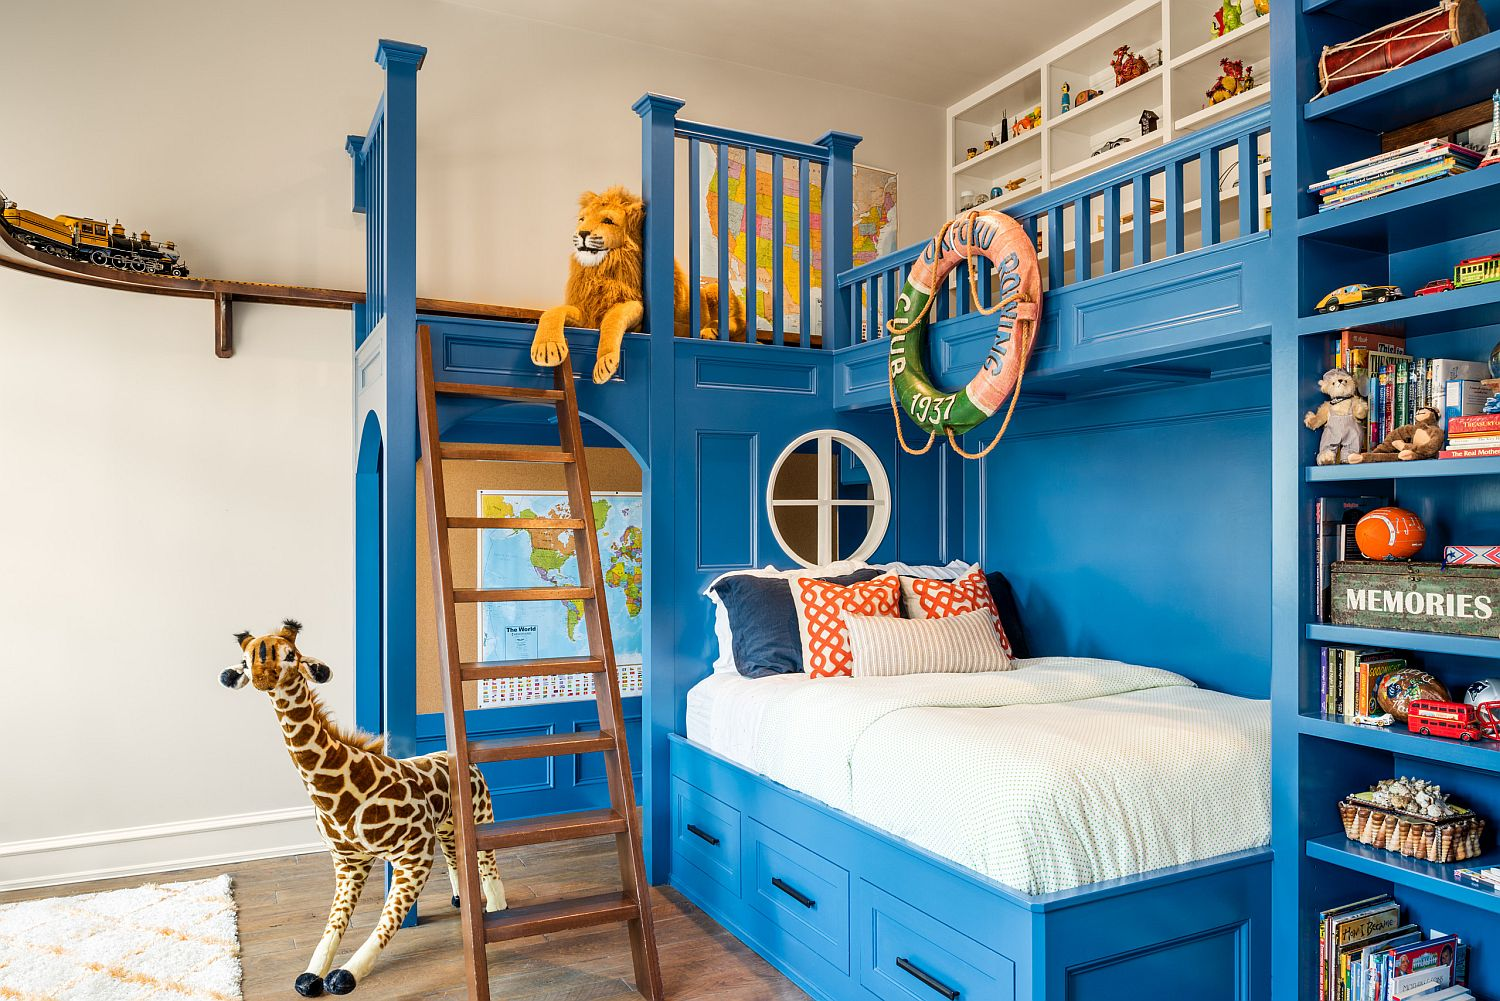 It is the amazing bunk bed with custom shelves steals the show in here